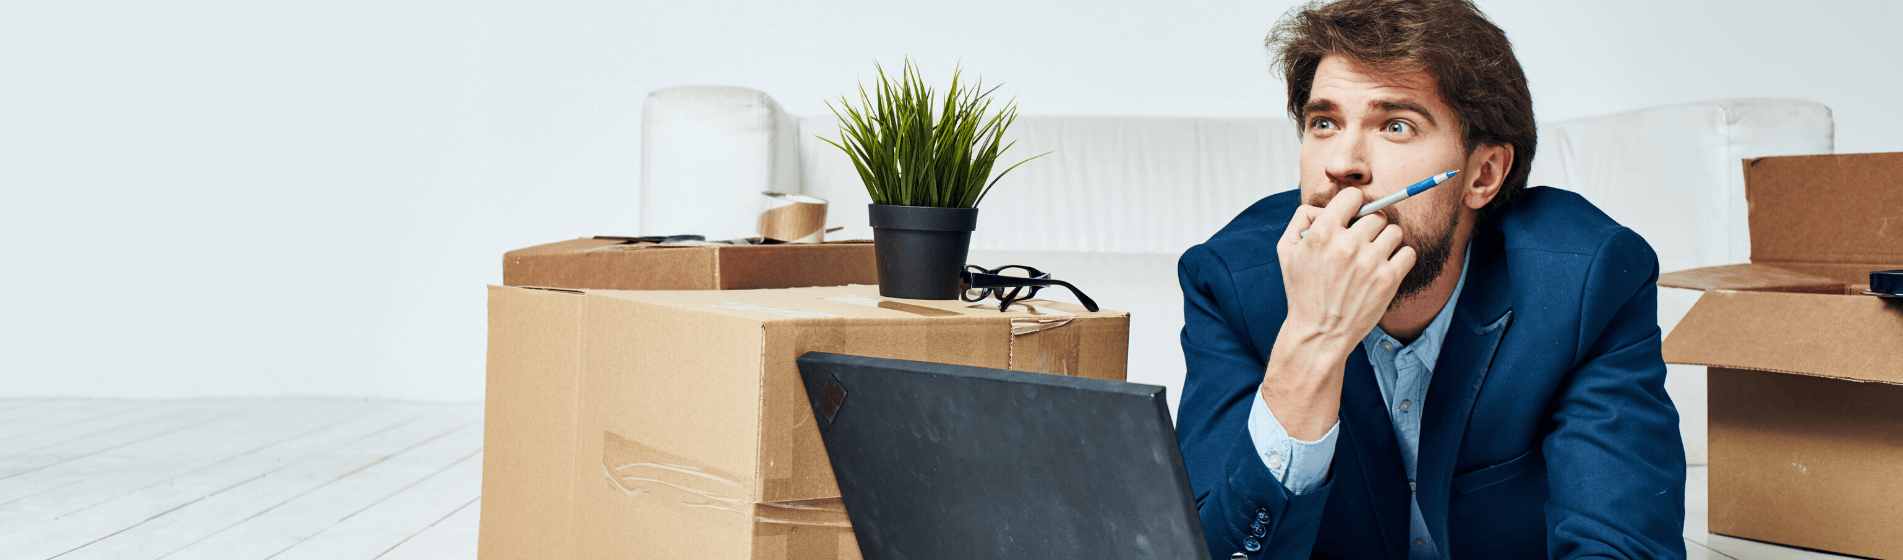 How To Know When Your Business Should Move Offshore